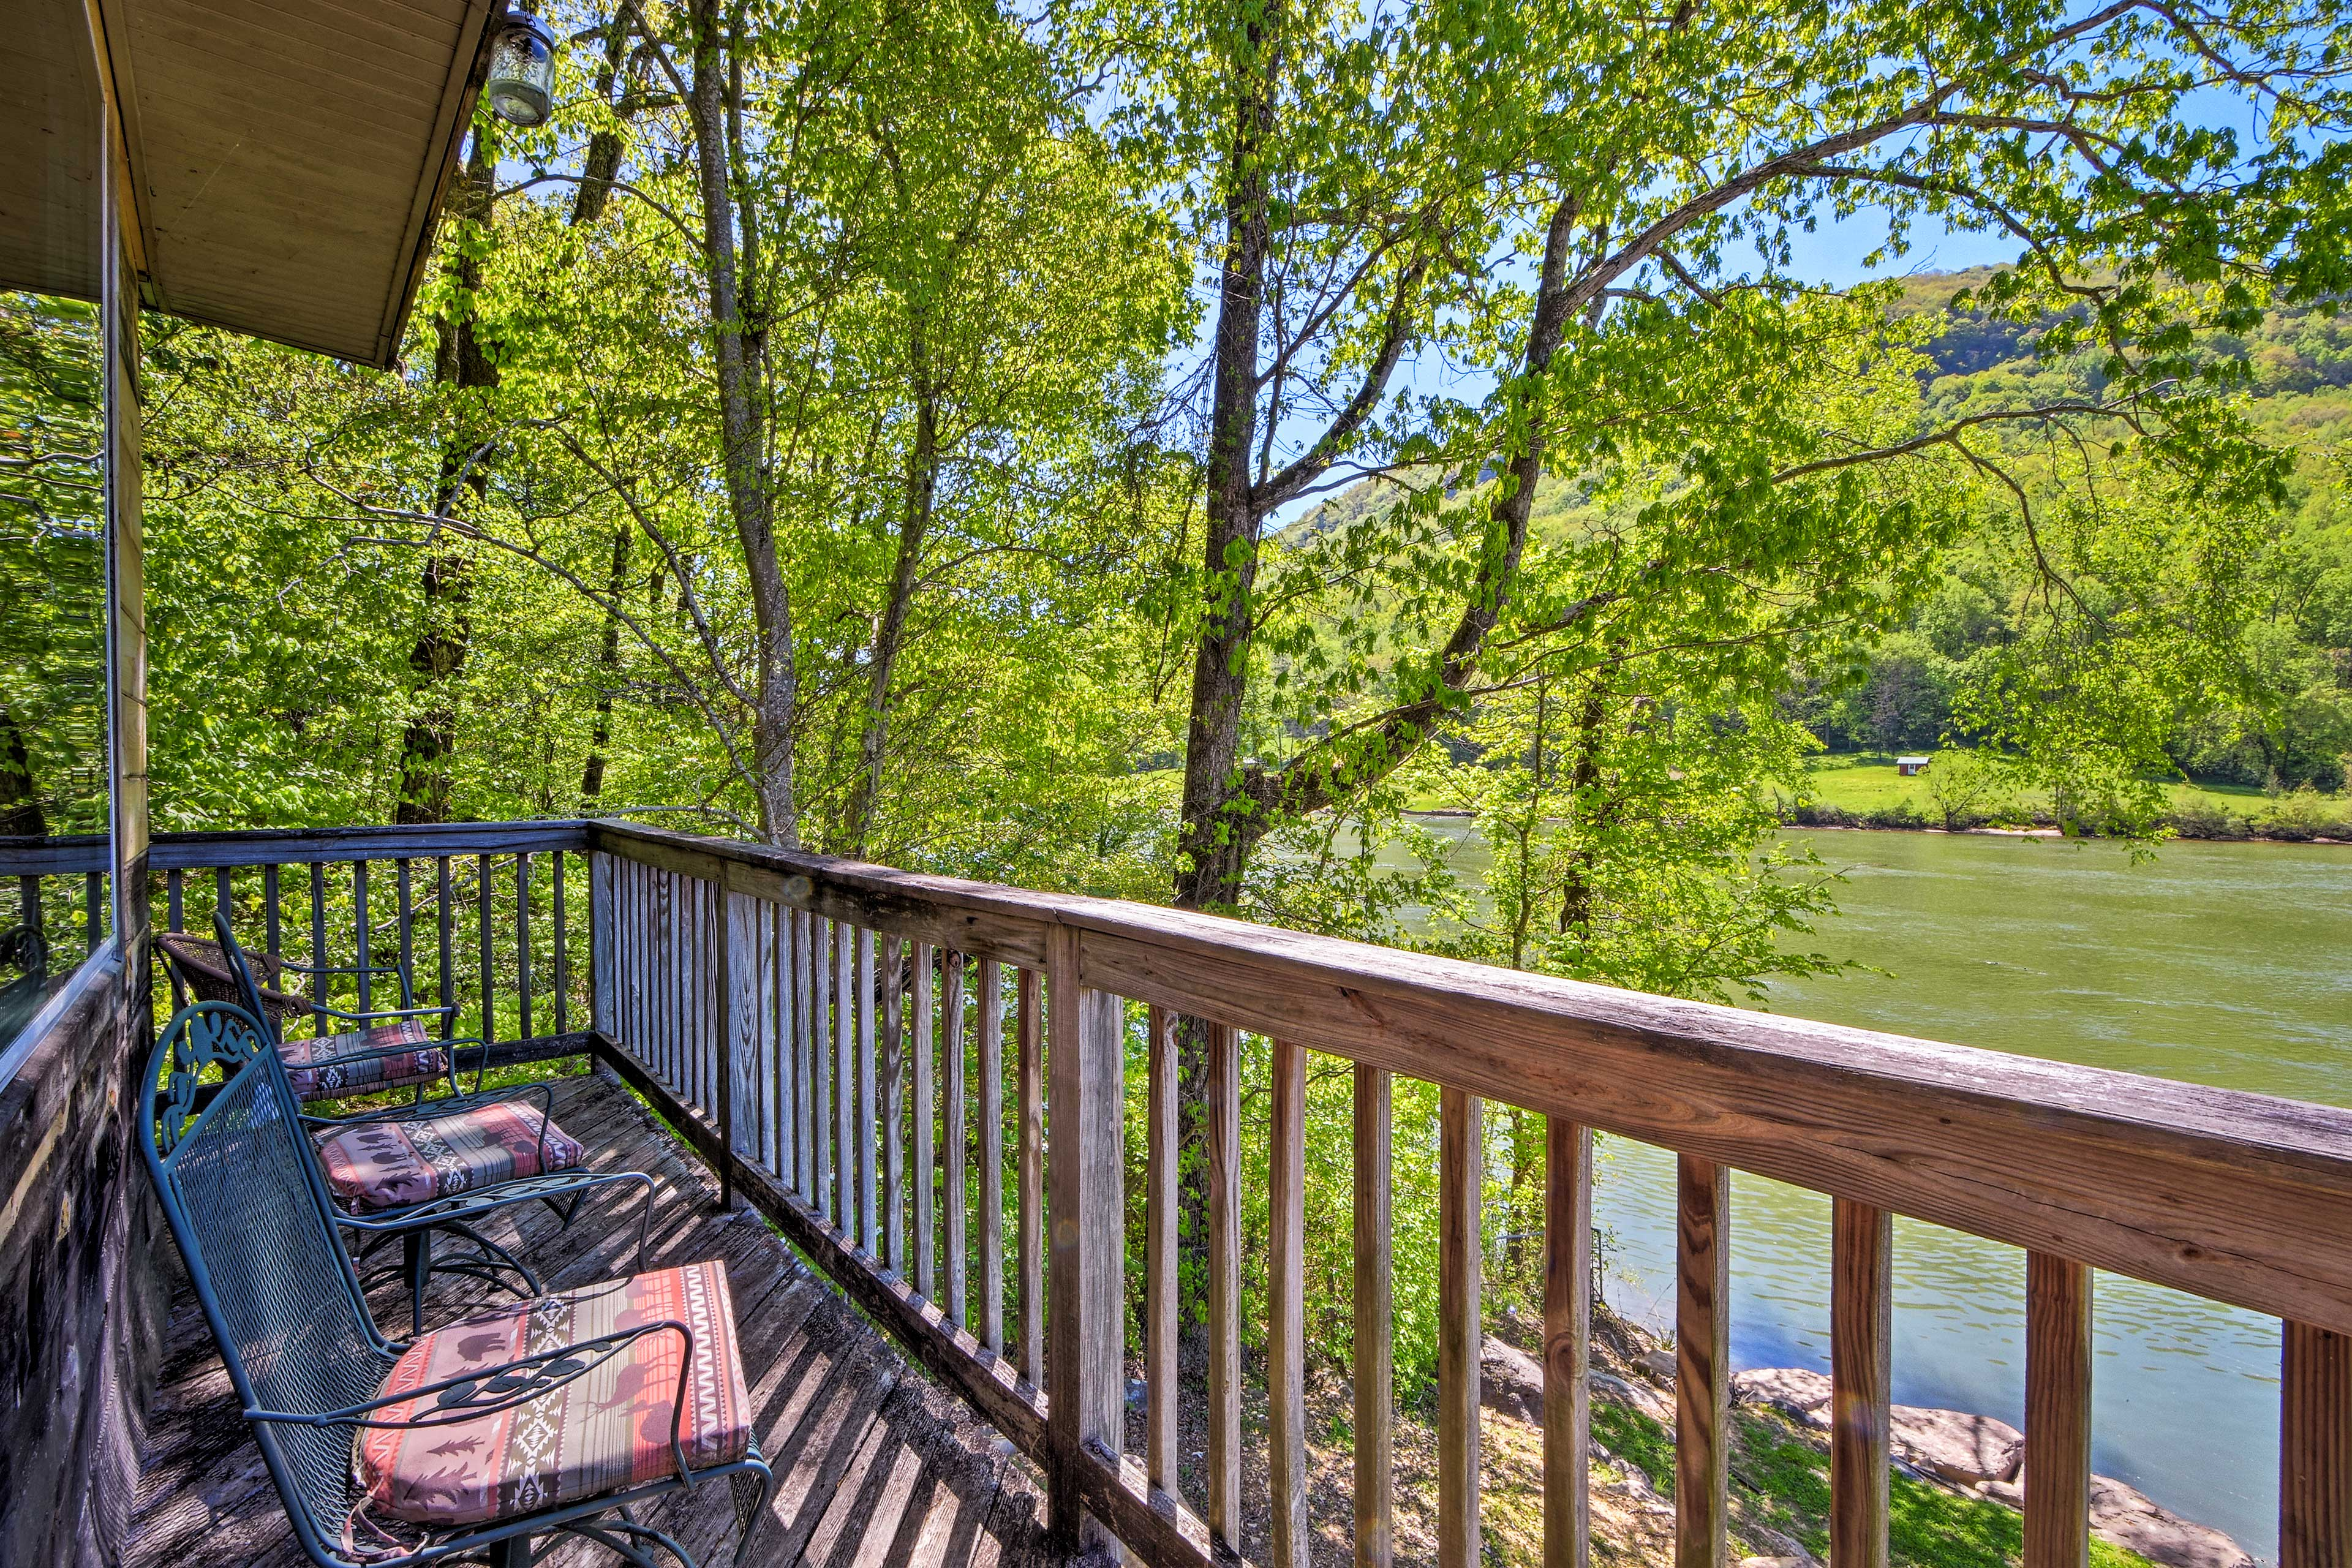 Soak up the incredible river views from the exposed deck.